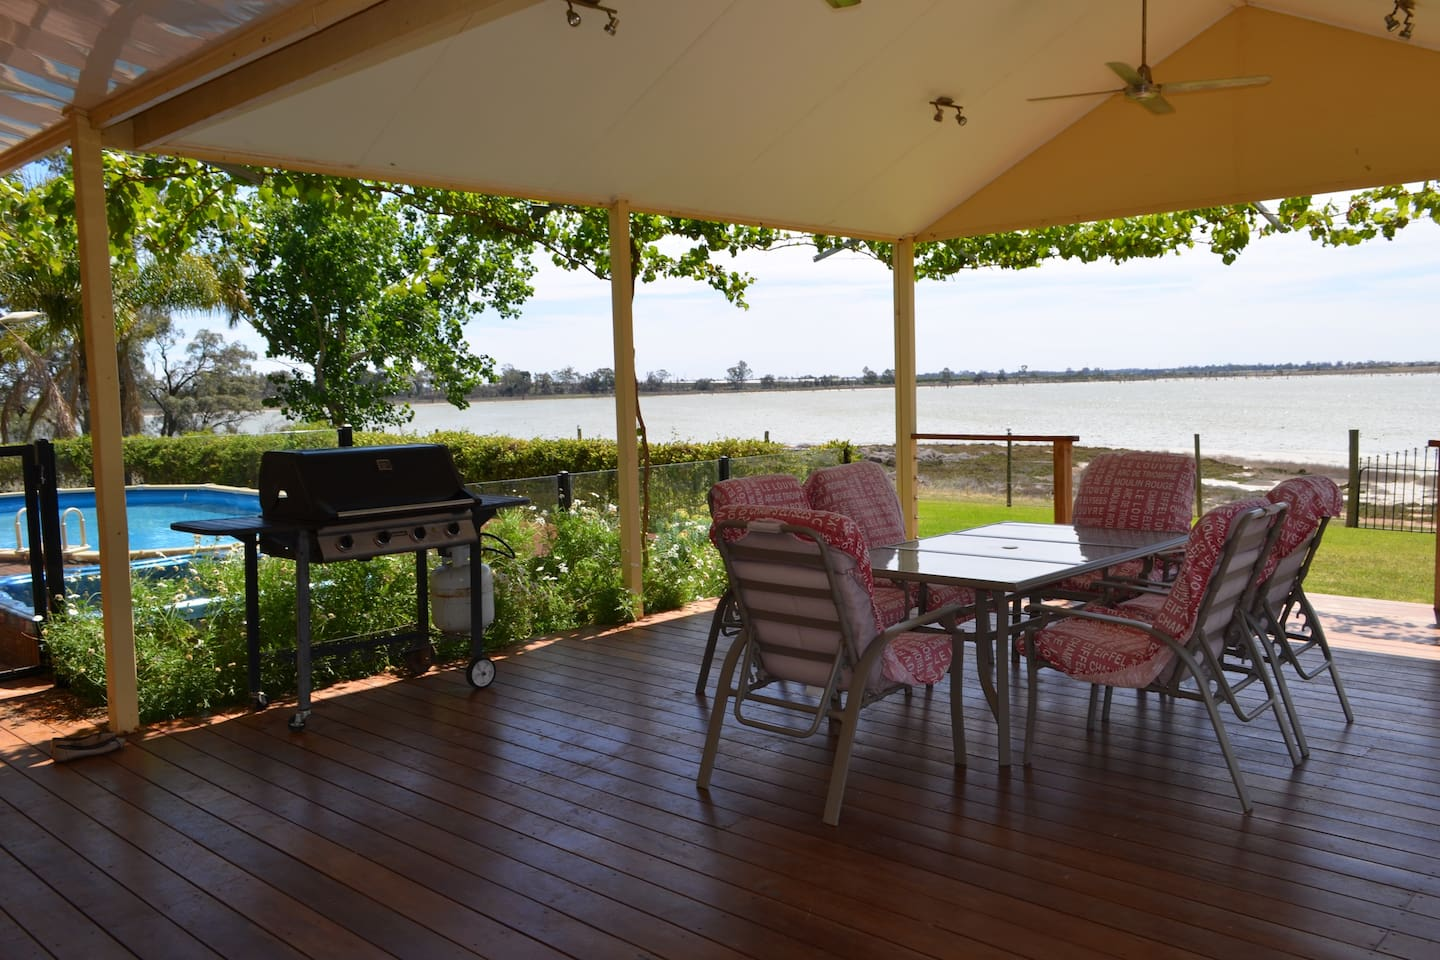 BBQ Patio area with pool overlooking Lake Hawthorn